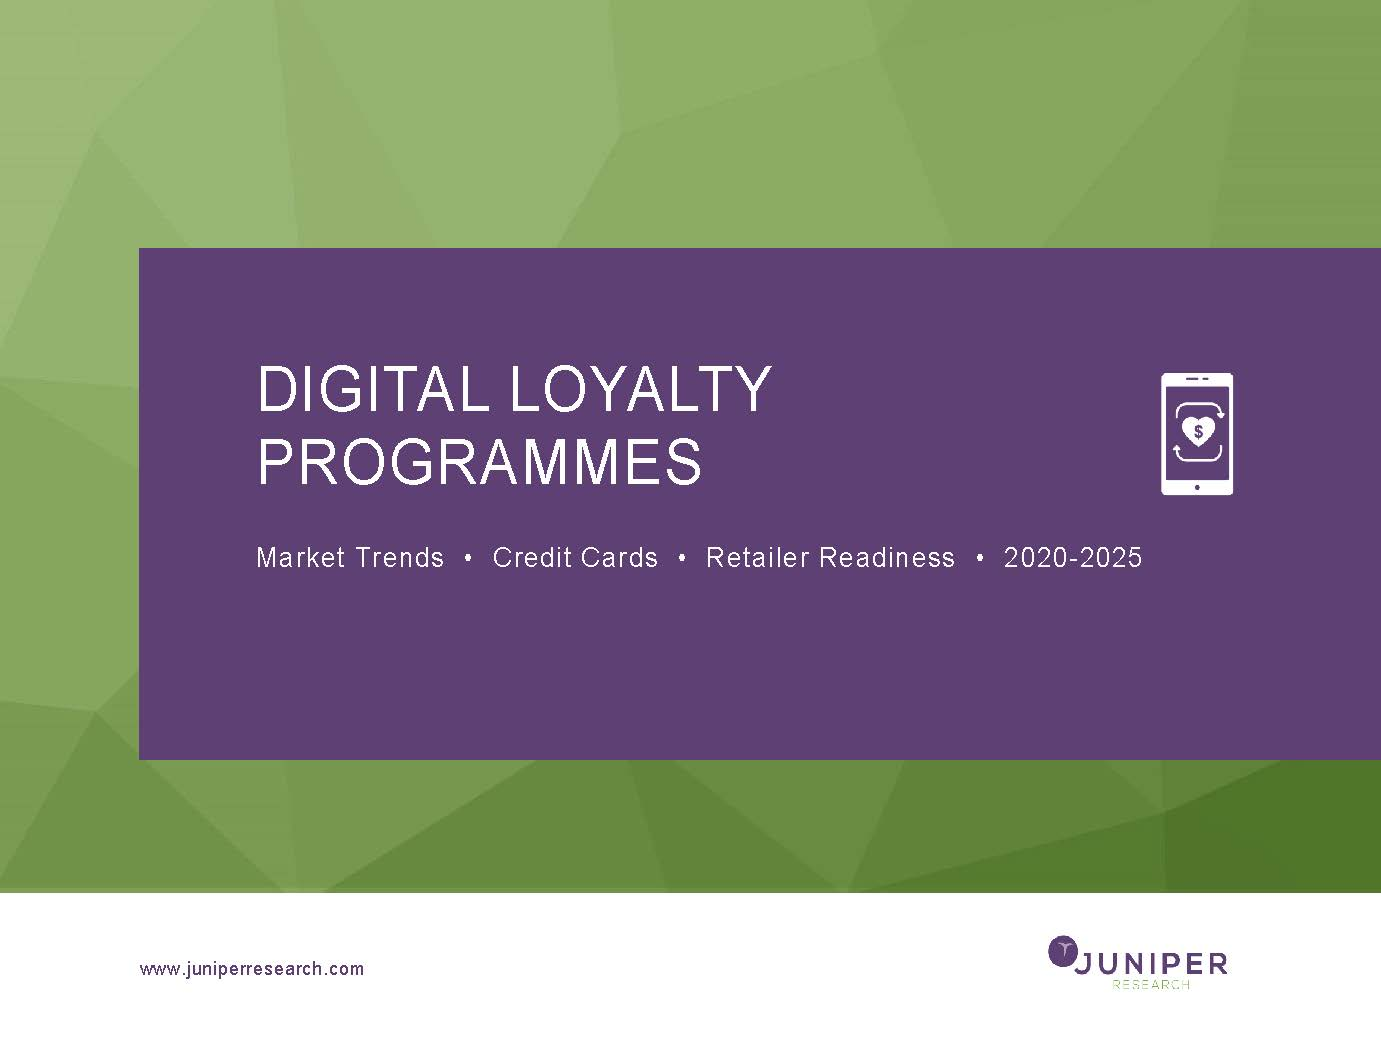 Digital Loyalty Programmes